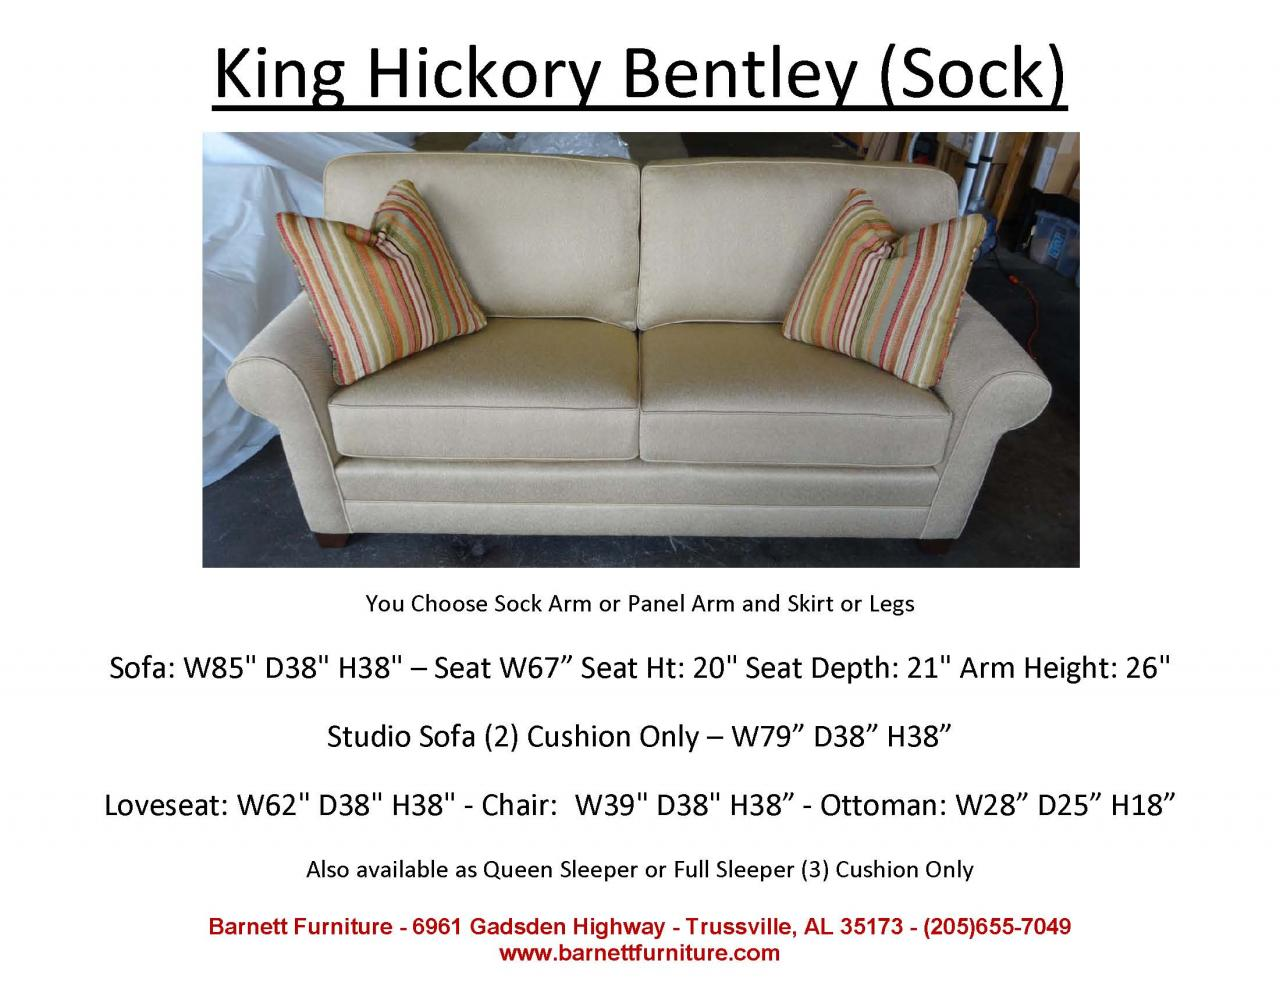 bentley sofa by king hickory standard length of a barnett furniture apartment size 72 quot 83